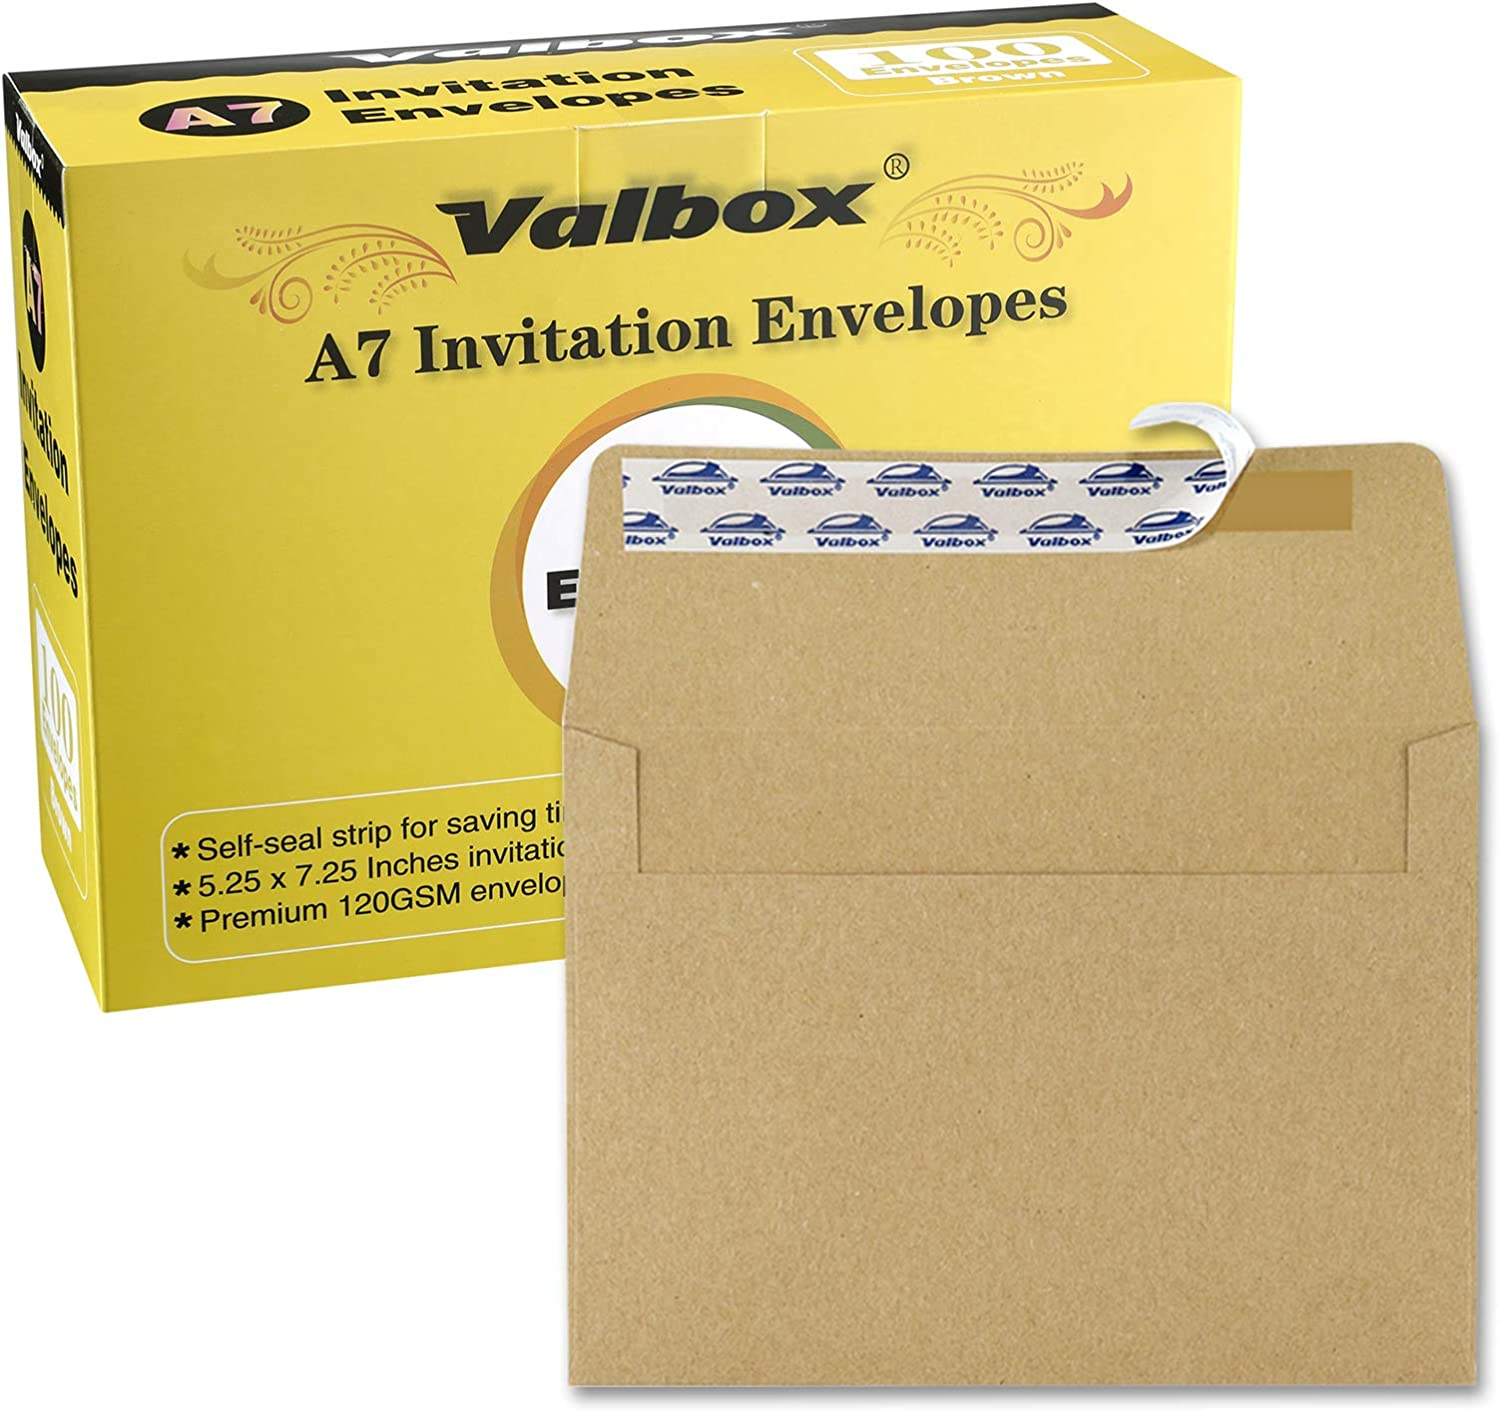 ValBox 100 Qty A7 Invitation Envelopes 5 x 7, 120GSM Brown Kraft Paper Envelopes for 5x7 Cards, Self Seal, Weddings, Invitations, Baby Shower, Stationery, Office, 5.25 x 7.25 Inches : Office Products